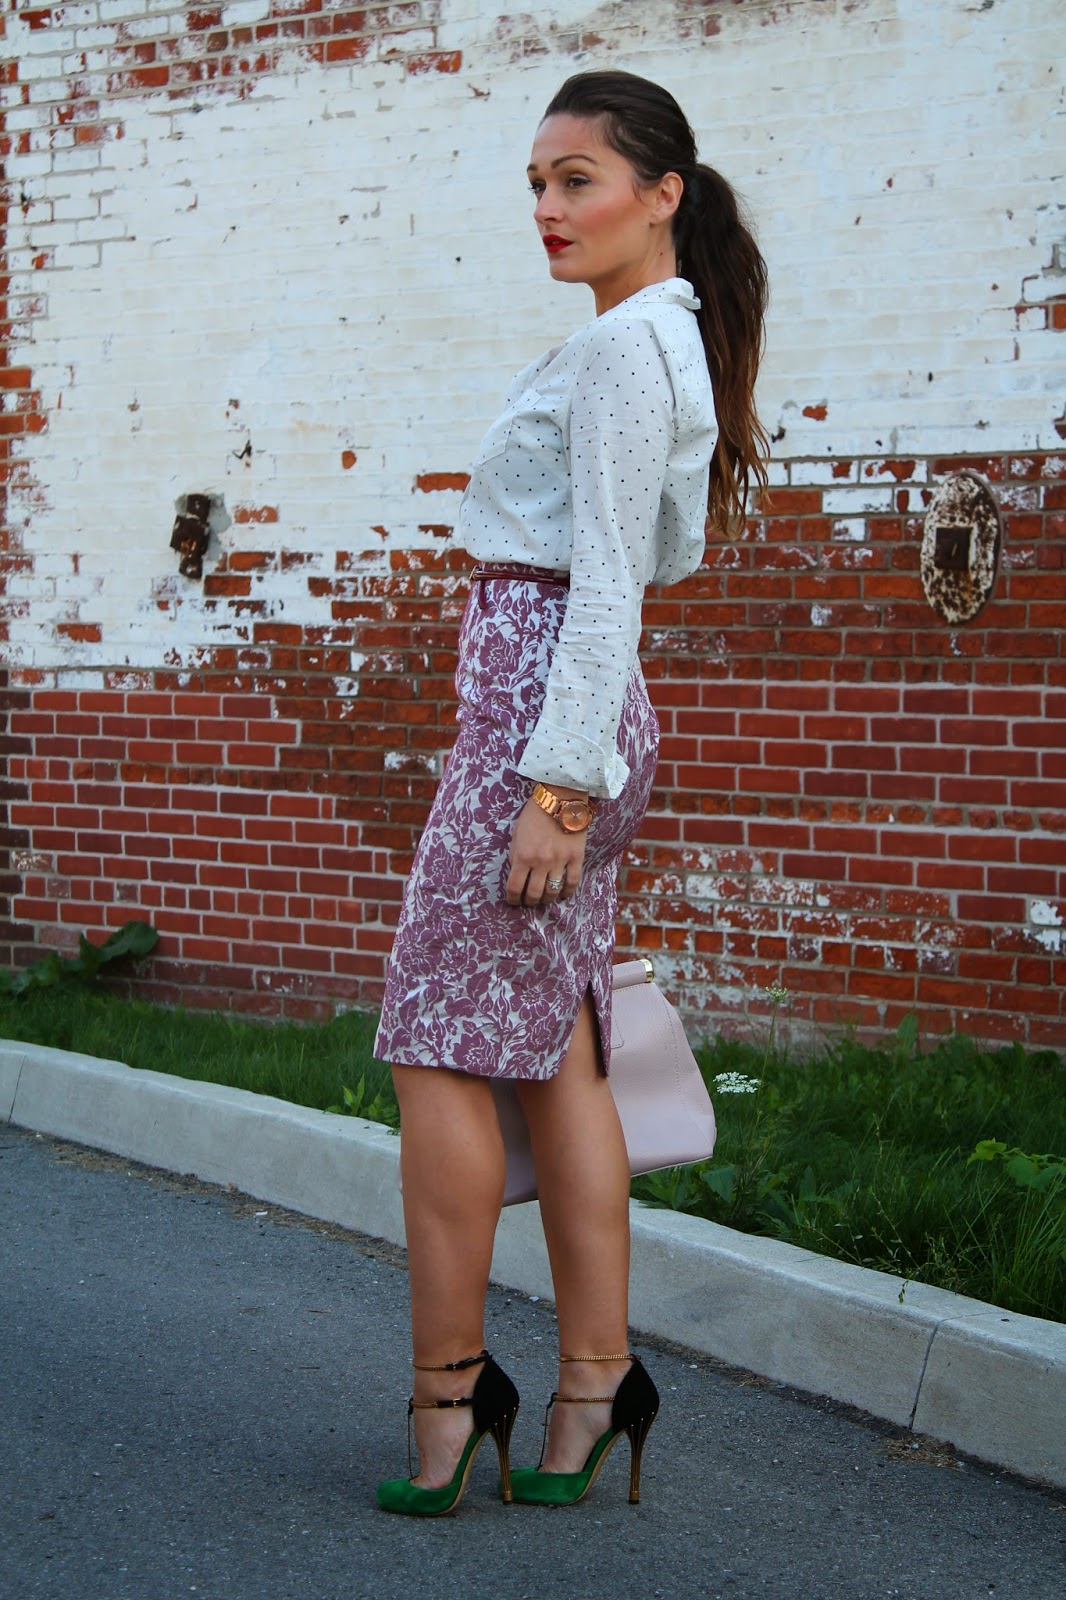 Gucci shoes, Gucci sandals, Gucci suede shoes, floral skirt, polka dot shirt, print mixing, blogerke, toronto street style, Toronto fashion blogger